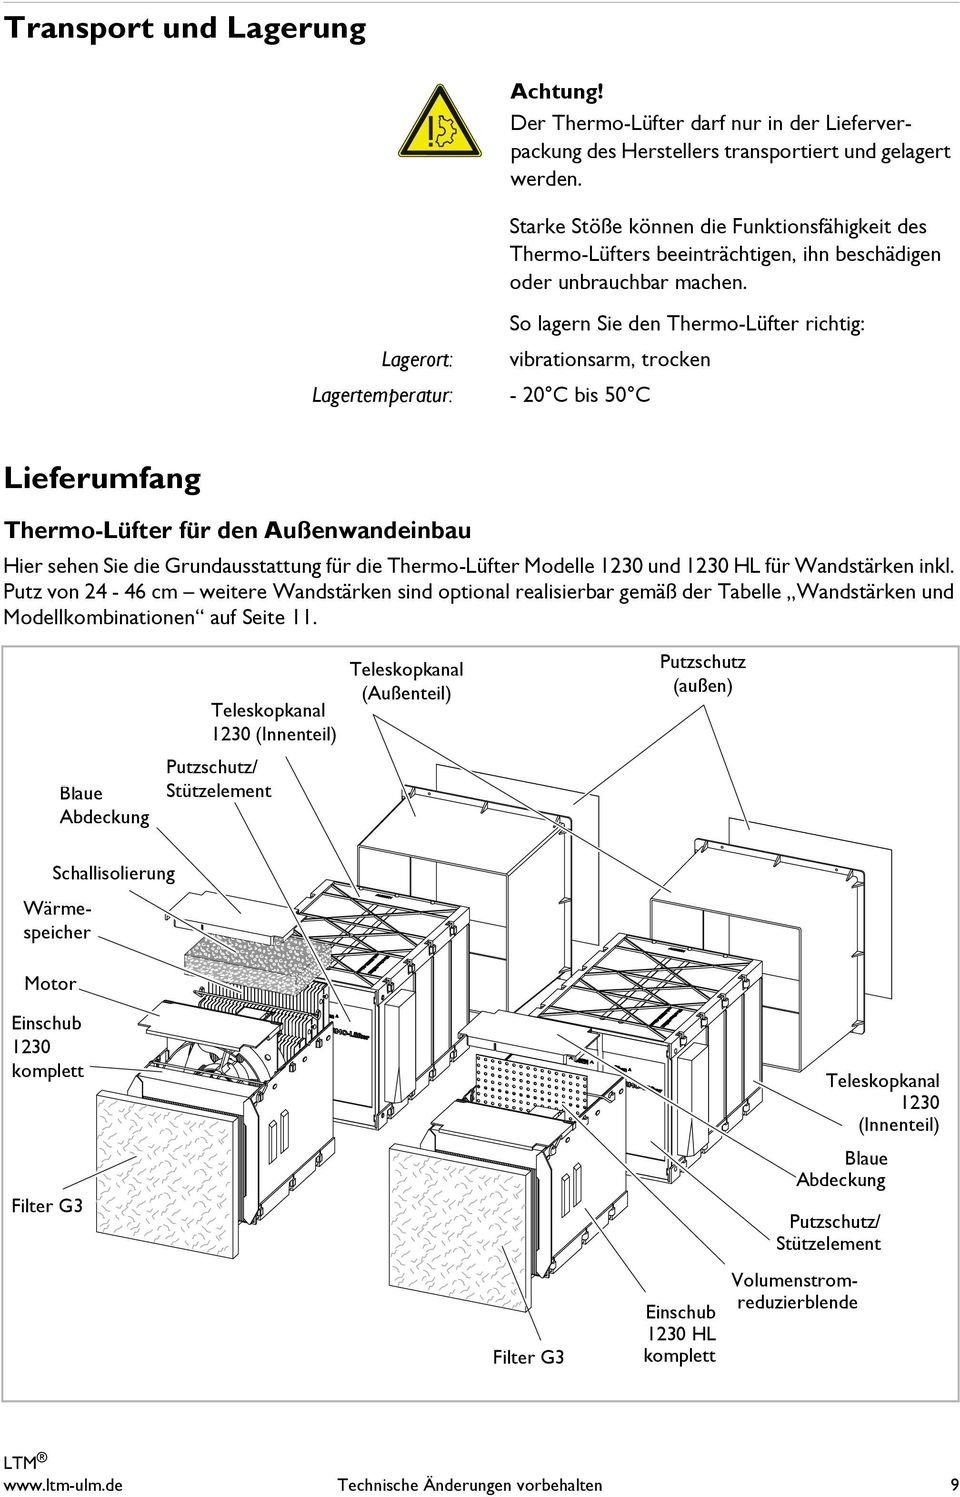 betriebsanleitung l ftungssystem thermo l fter 1230 und 1230 hl made in germany ltm gmbh pdf. Black Bedroom Furniture Sets. Home Design Ideas